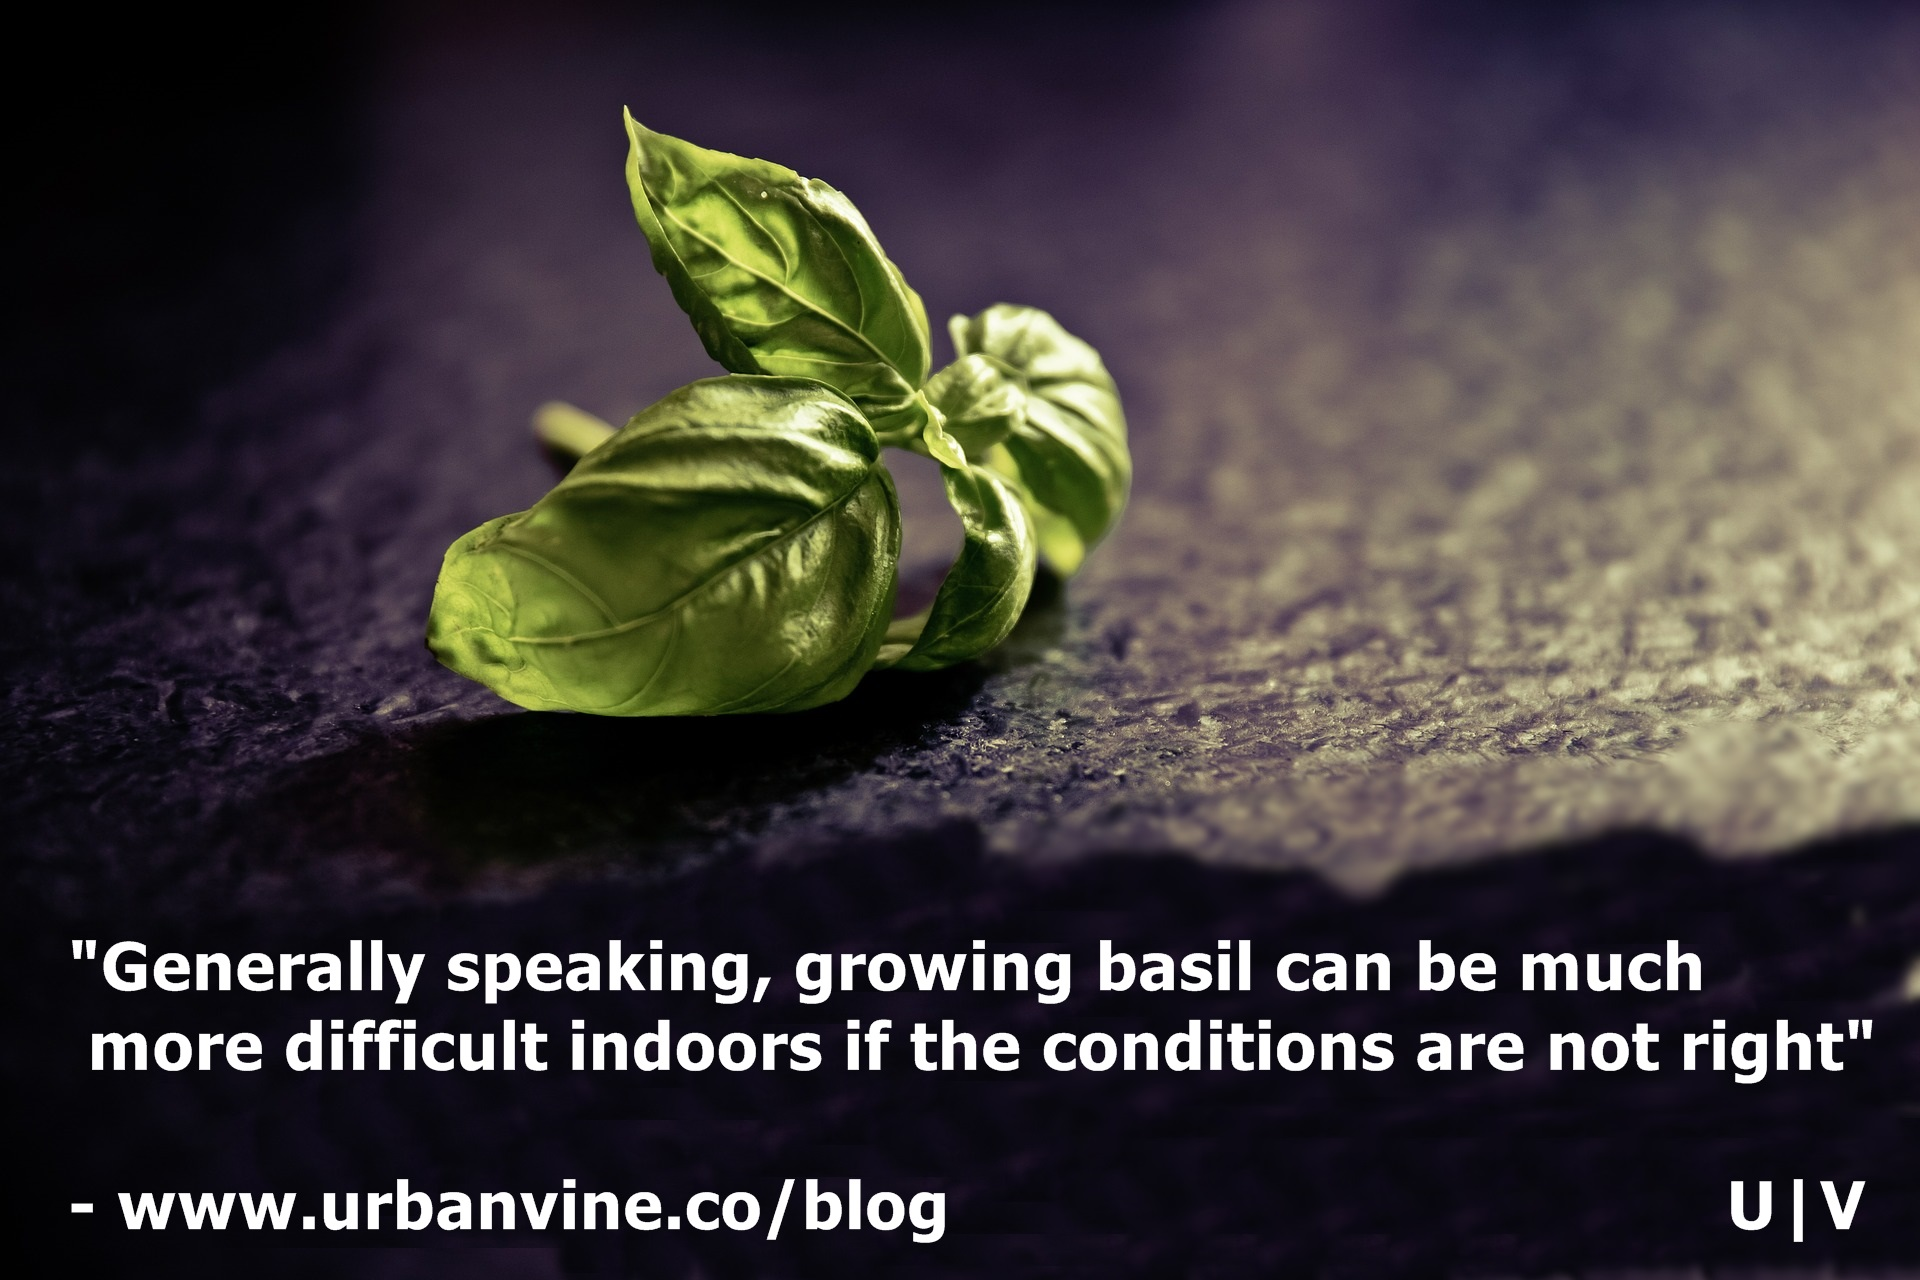 Growing basil completely indoors is challenging. One alternative for urban growers is to grow part i